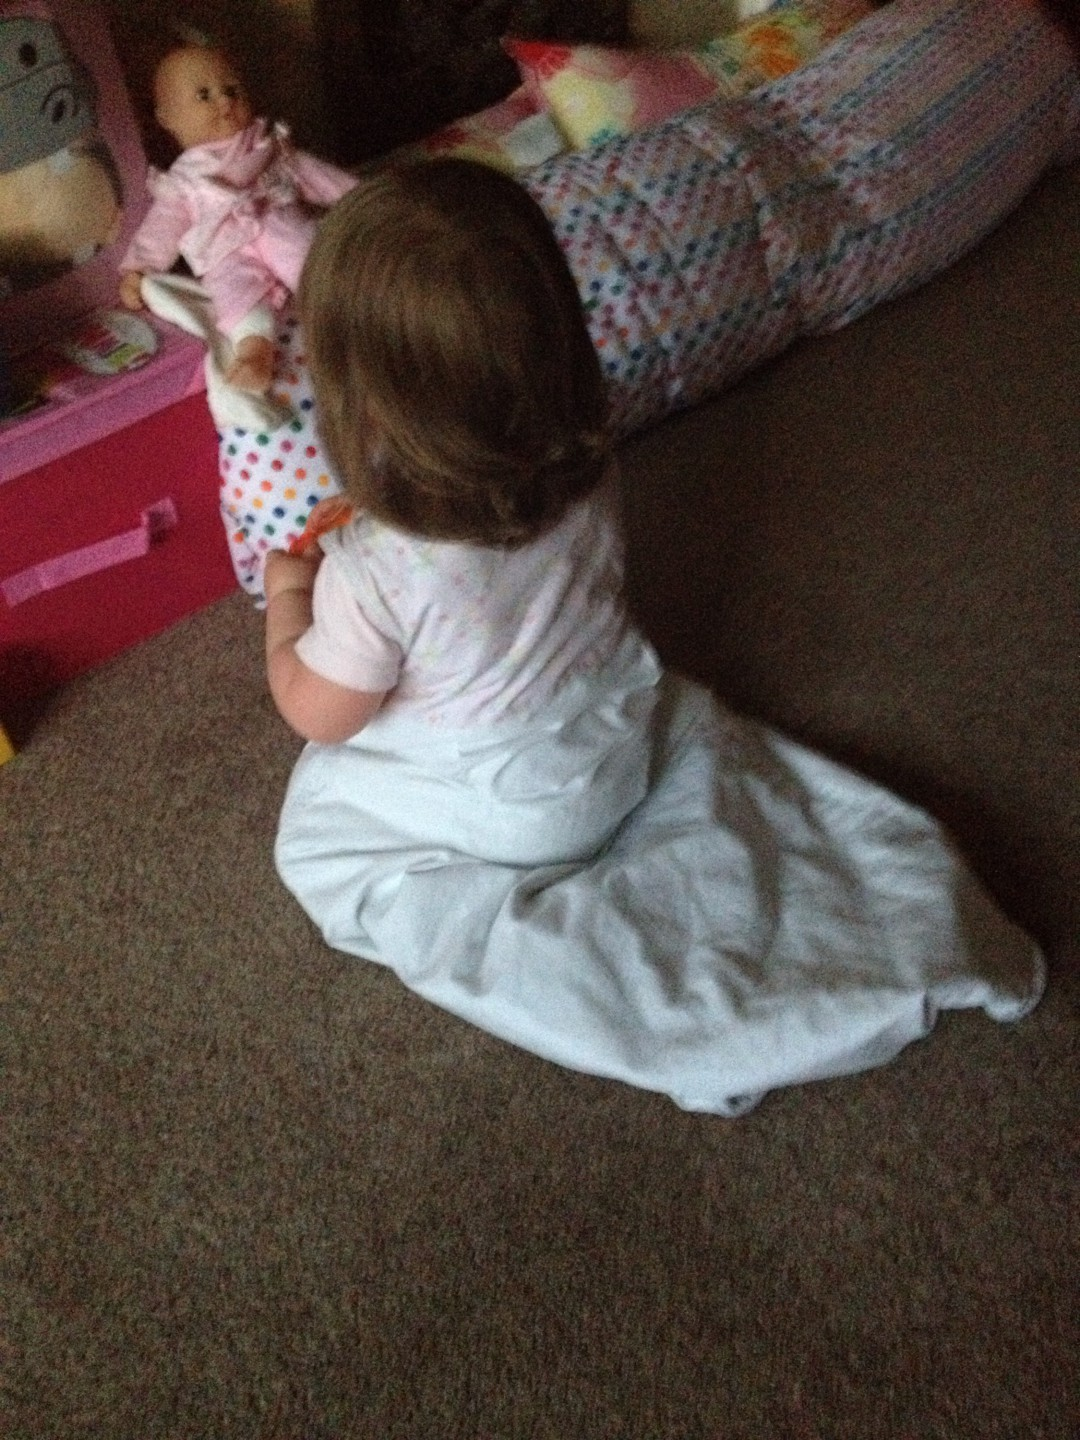 wickedwednesday toddler tantrums and refusing bed 17 month old